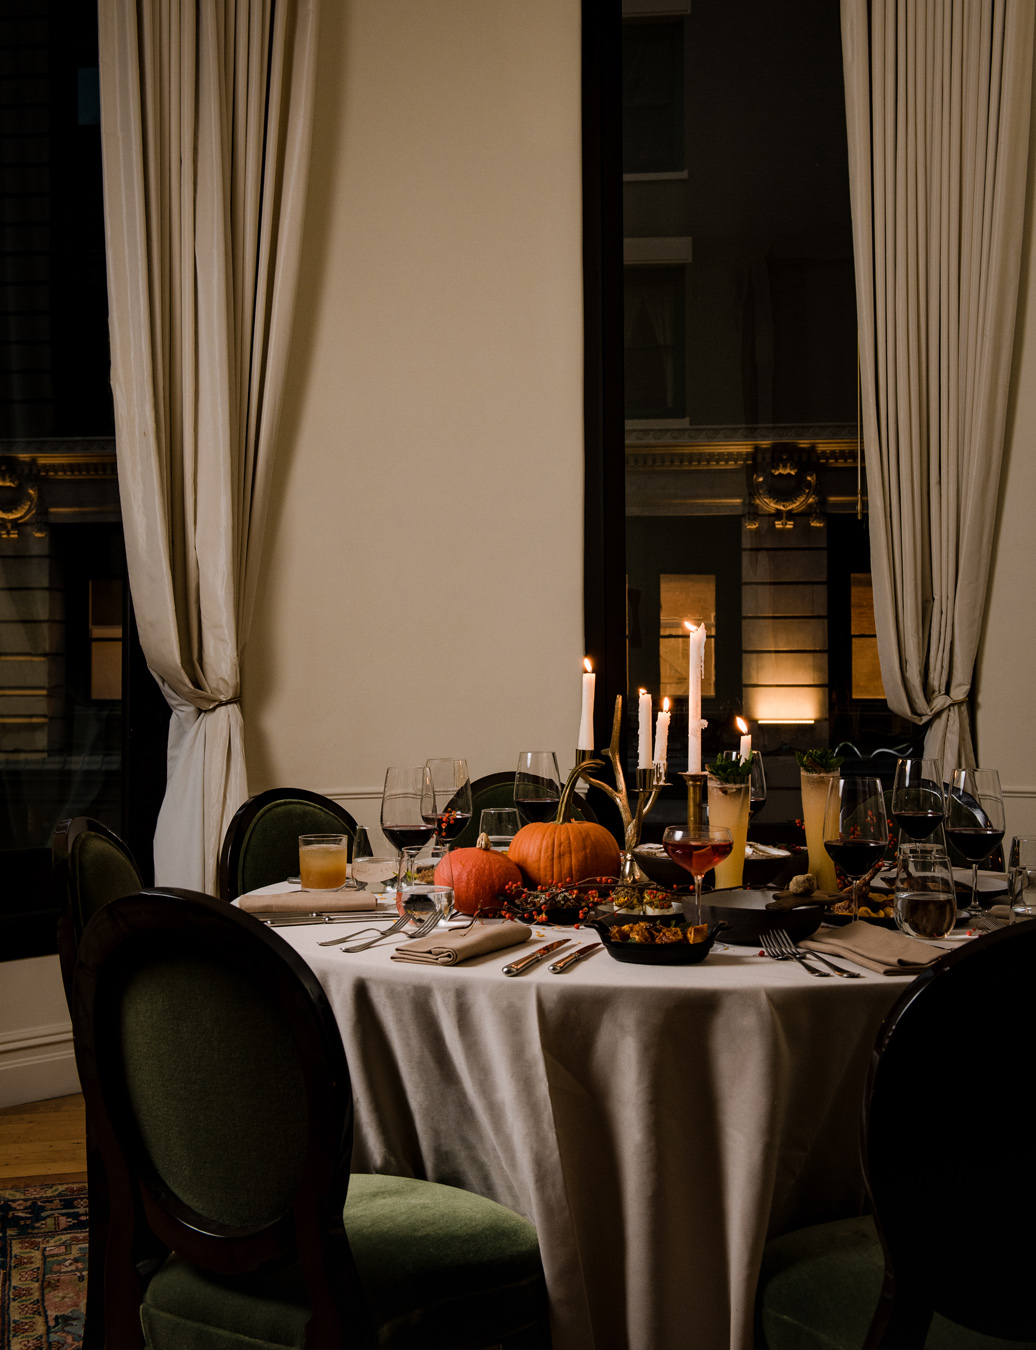 Thanksgiving candle light dining table with decorative pumpkins